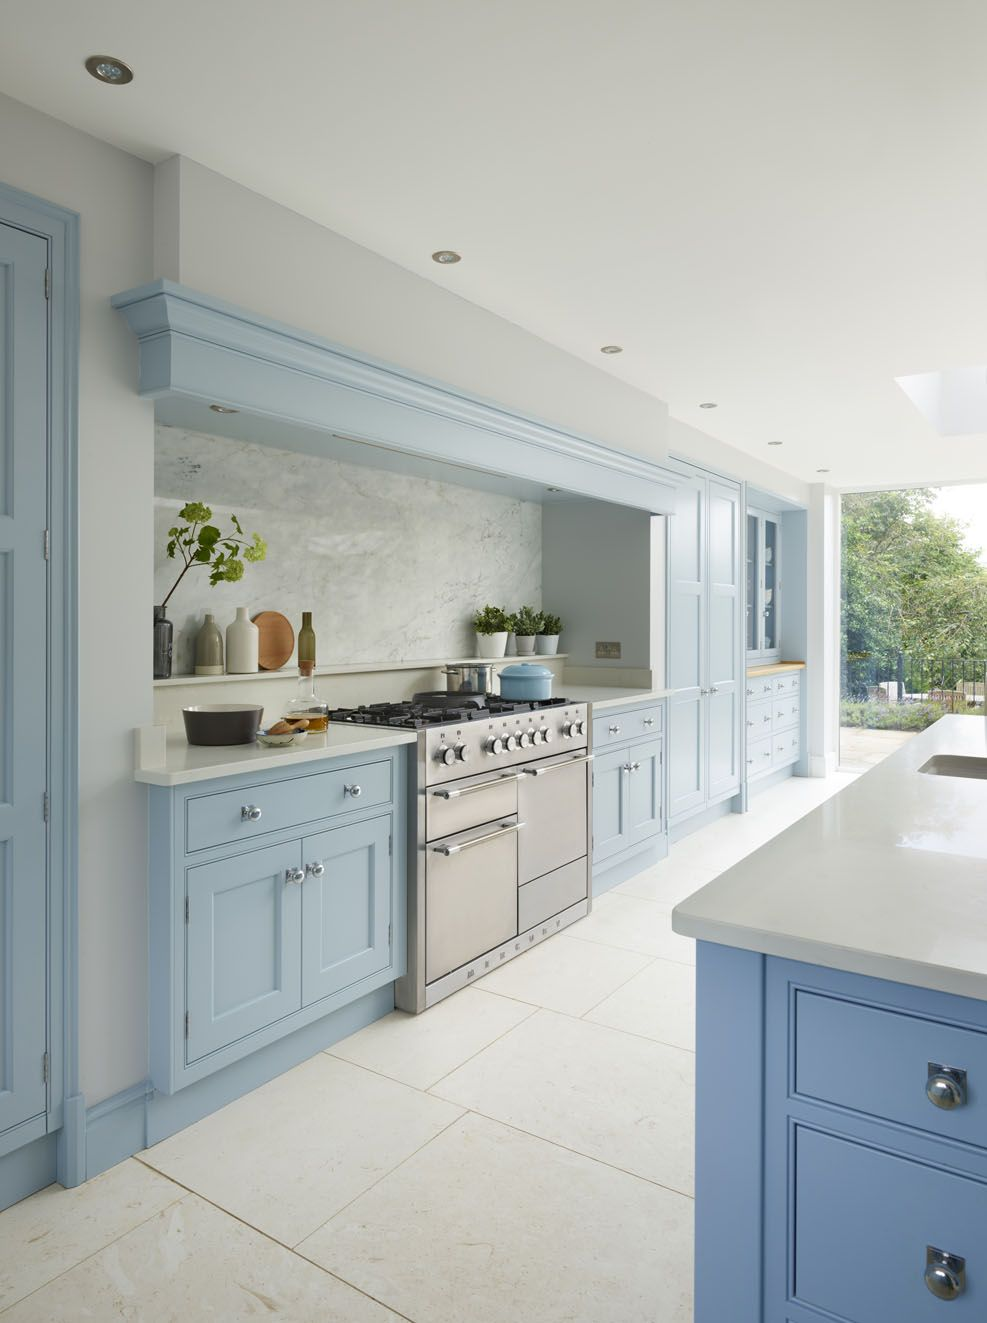 This Bespoke Blue Martin Moore Kitchen Was Designed And Handmade